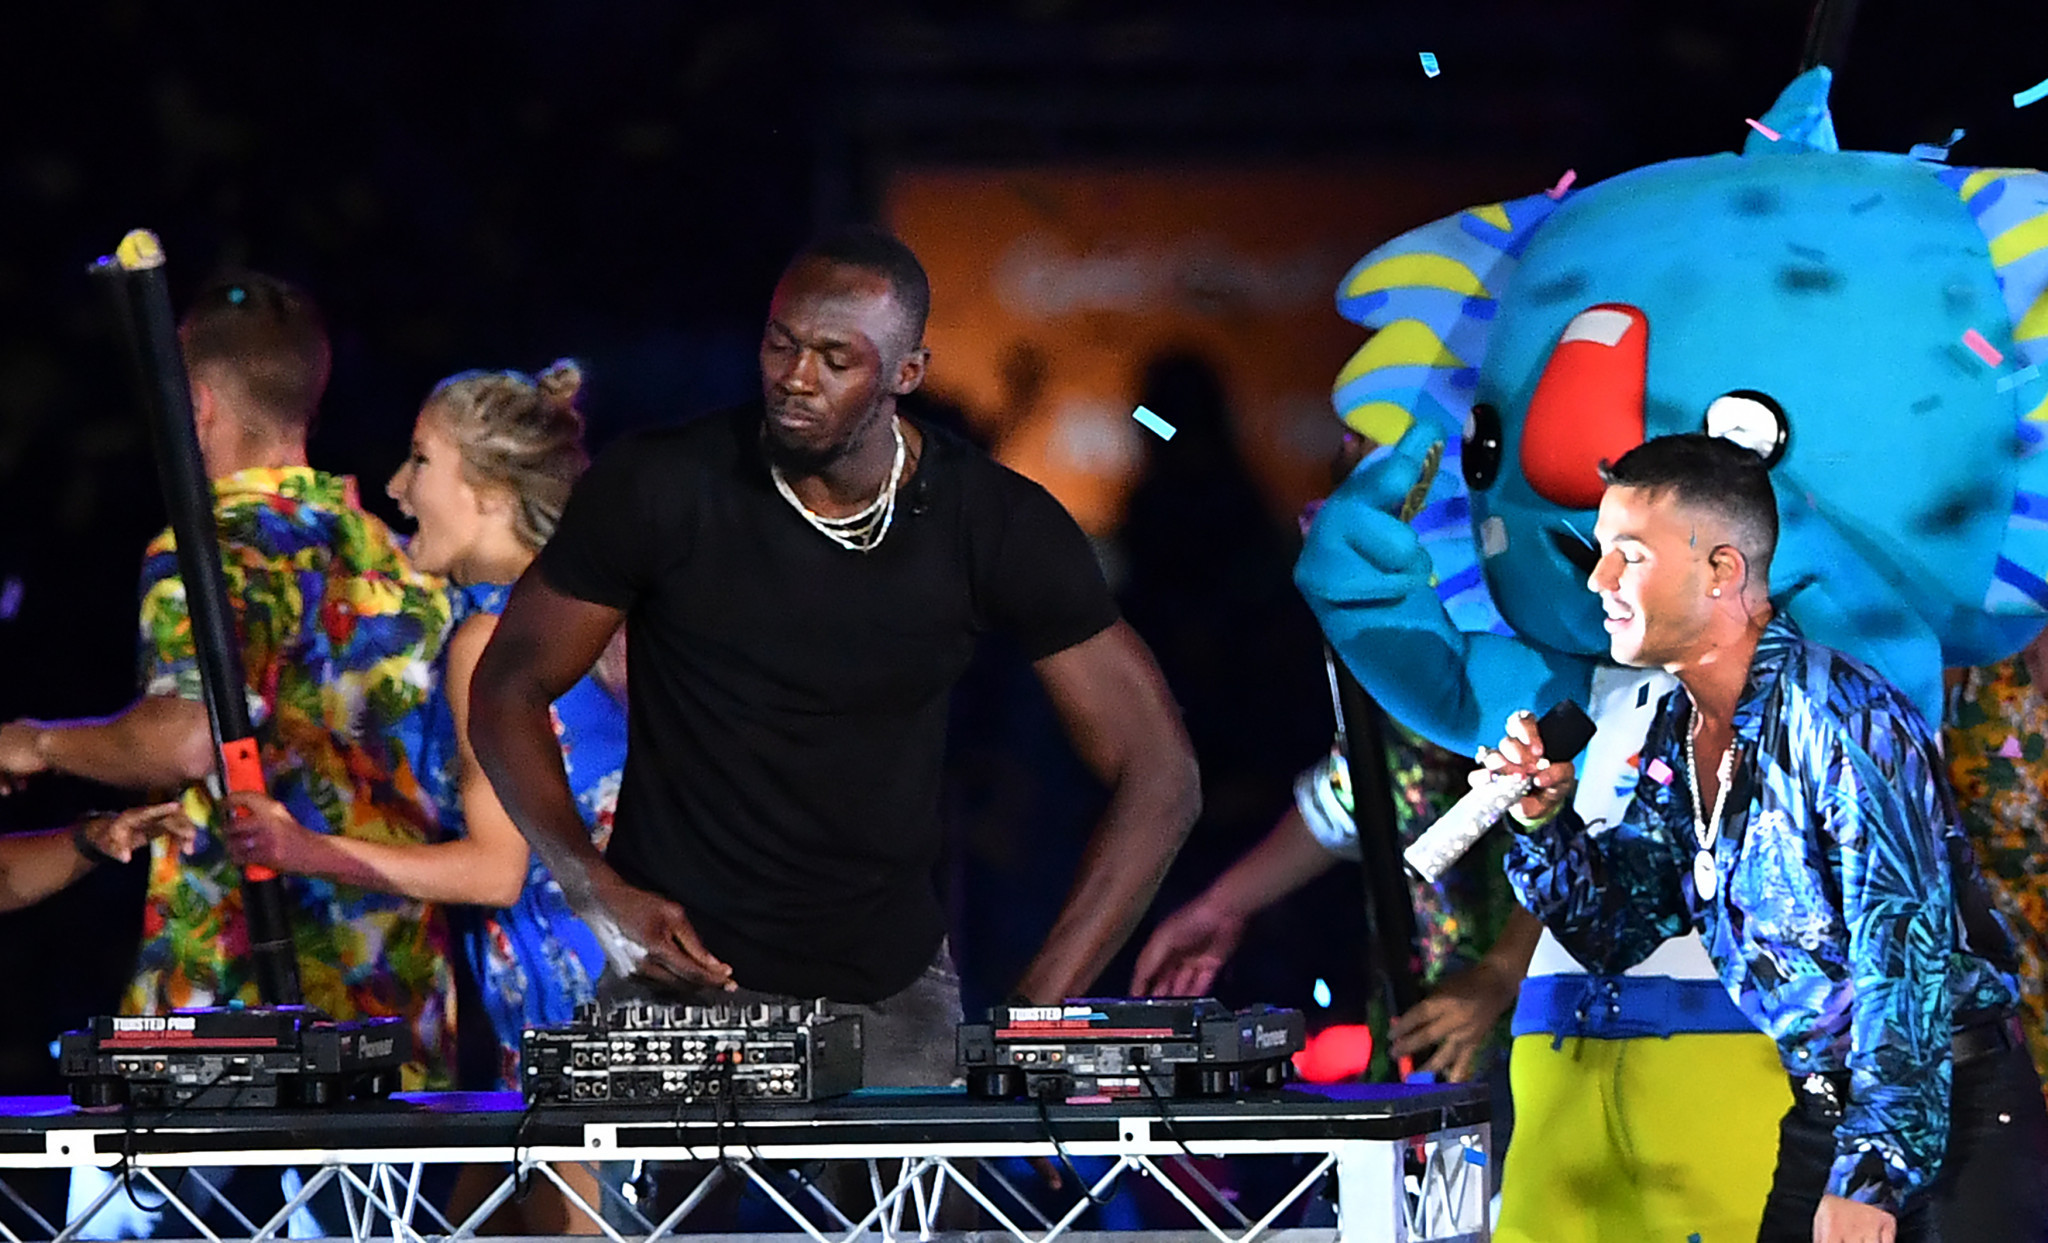 An appearance on the decks by Usain Bolt was a rare highlight of the Gold Coast 2018 Closing Ceremony which was a disappointment to many spectators and television viewers ©Getty Images